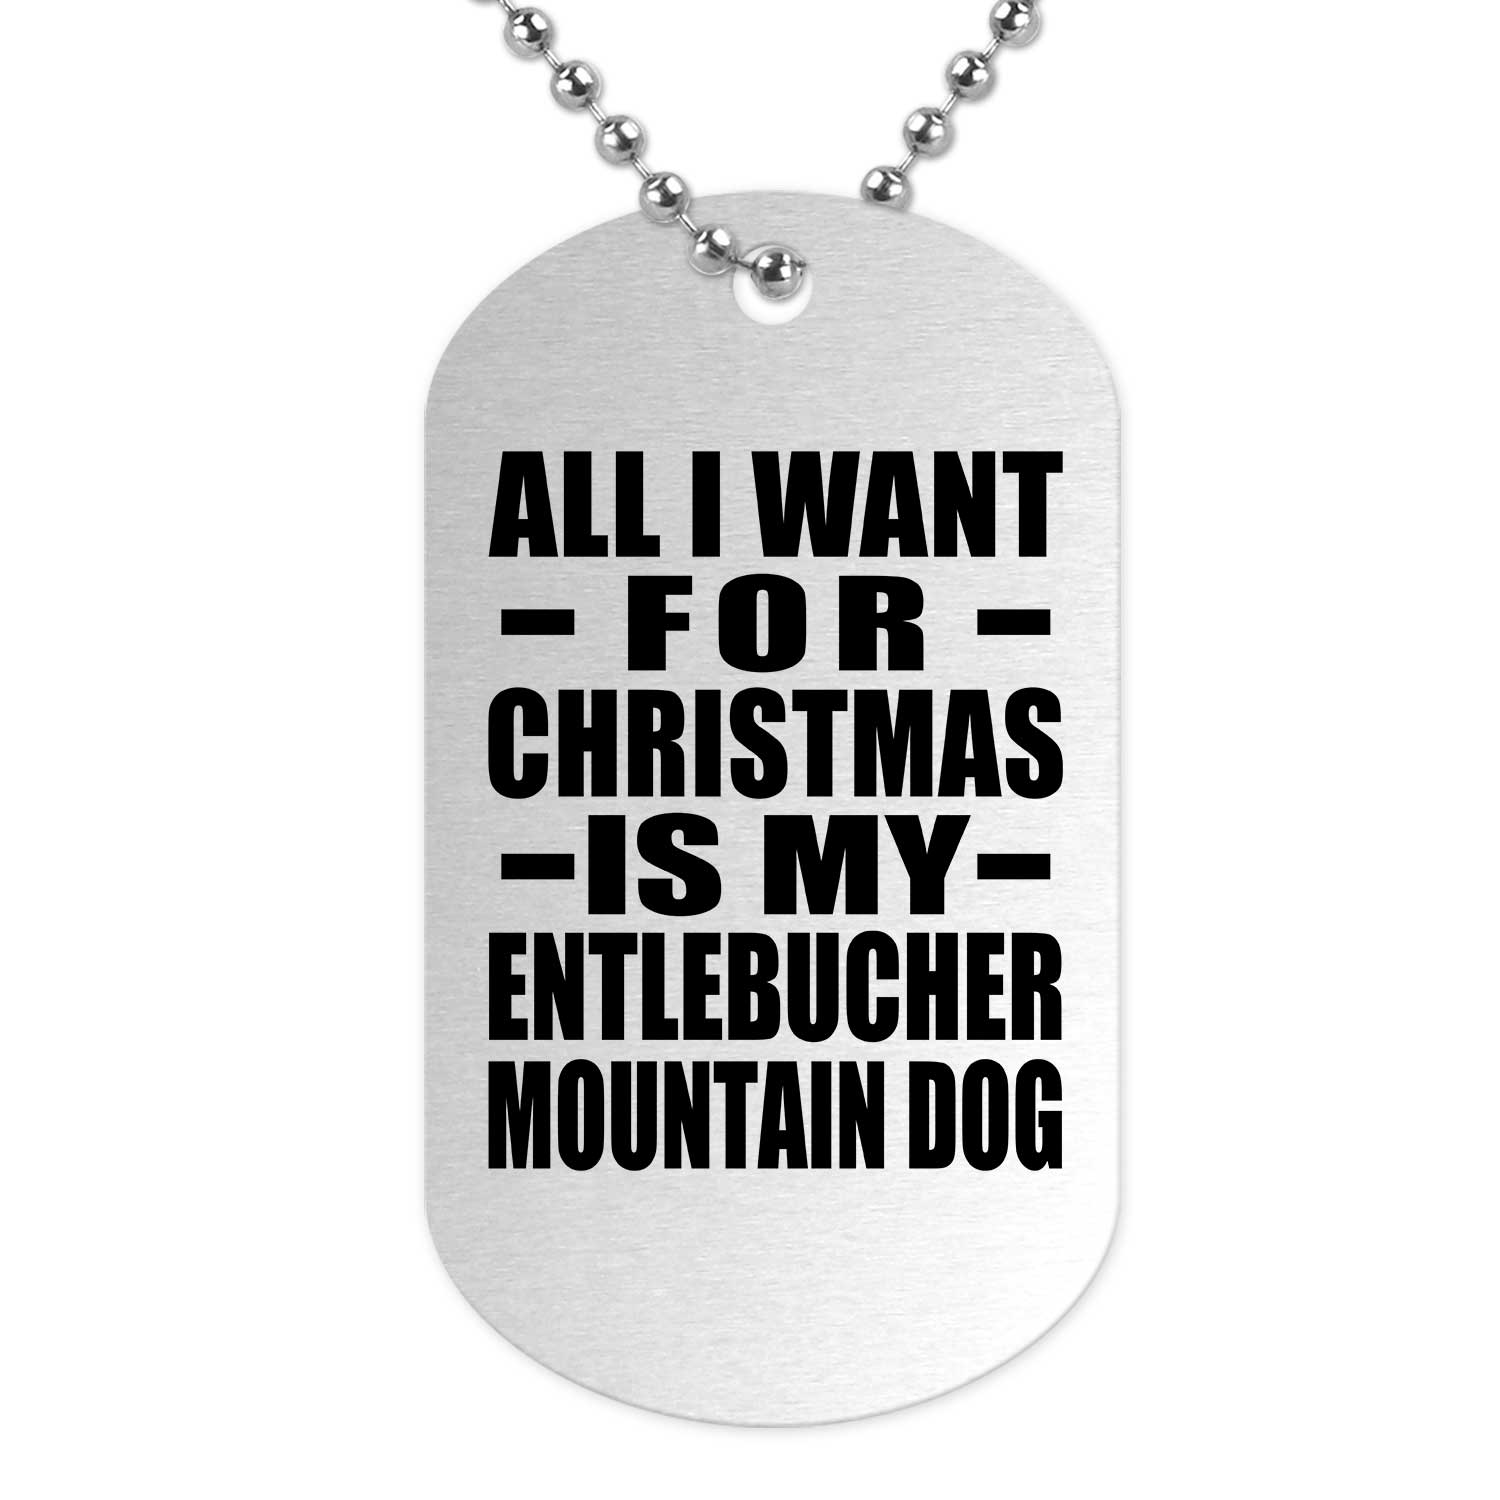 All I Want For Christmas Is My Entlebucher Mountain Dog - Military Dog Tag